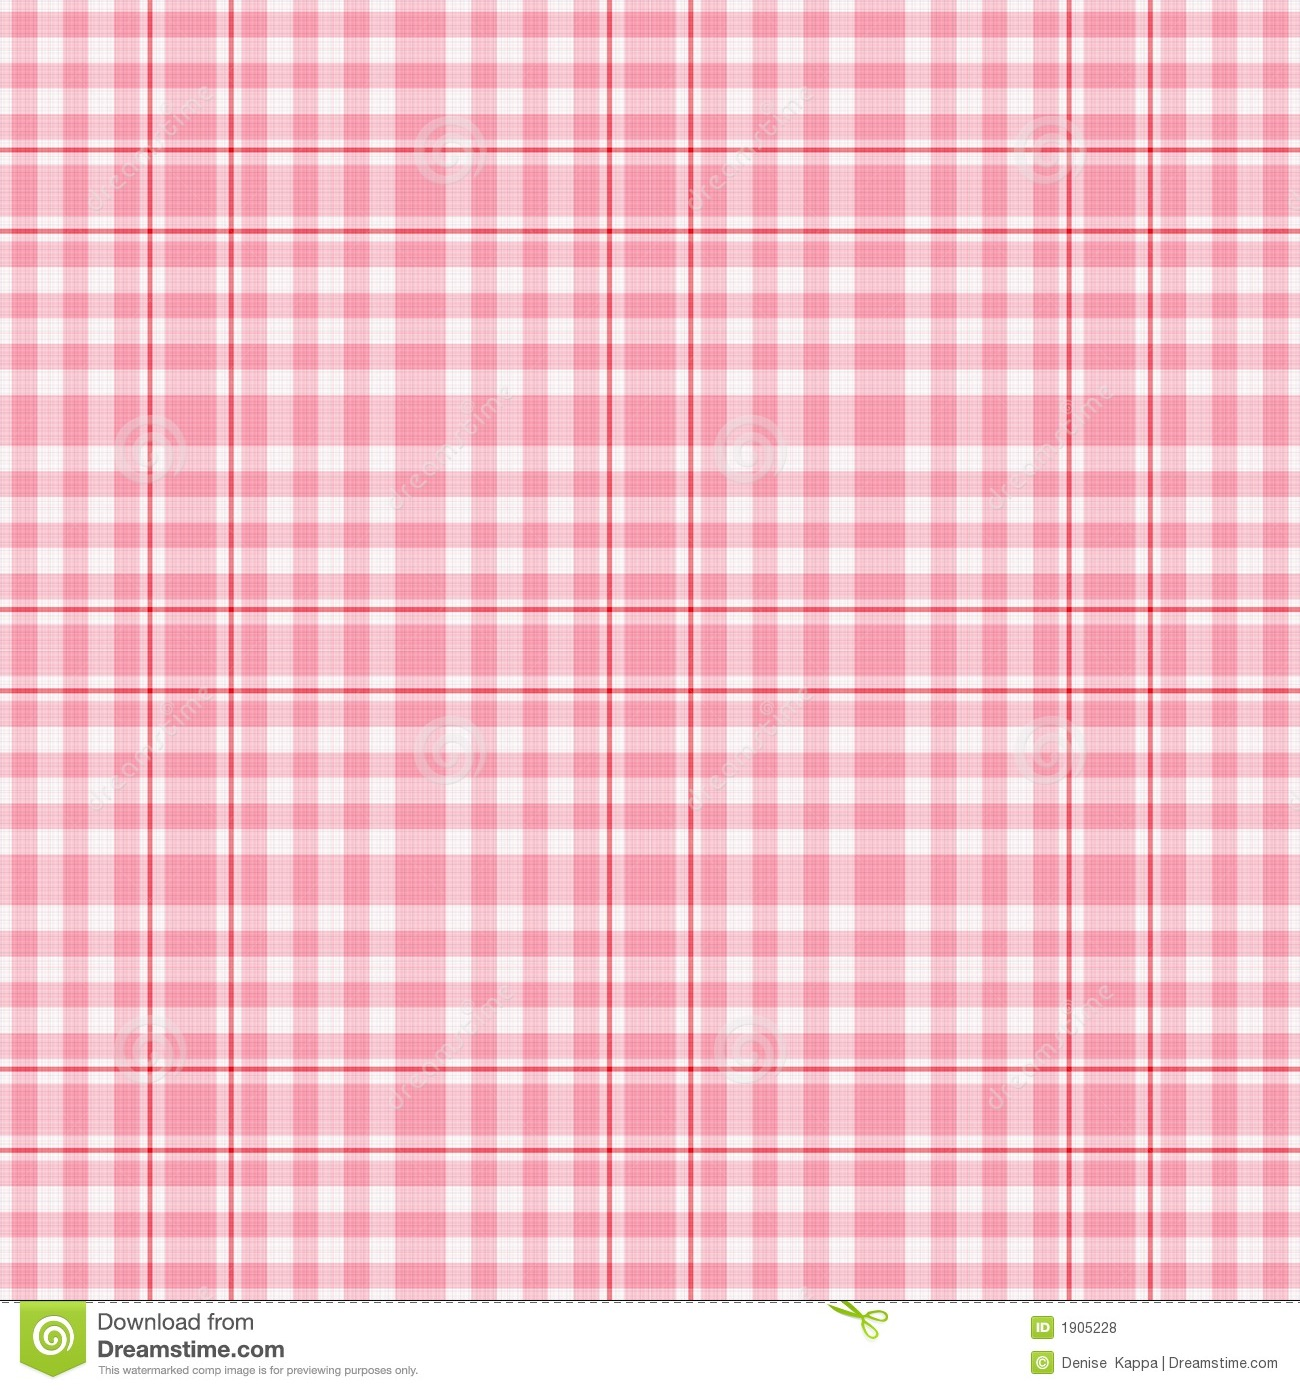 Seamles pink white plaid